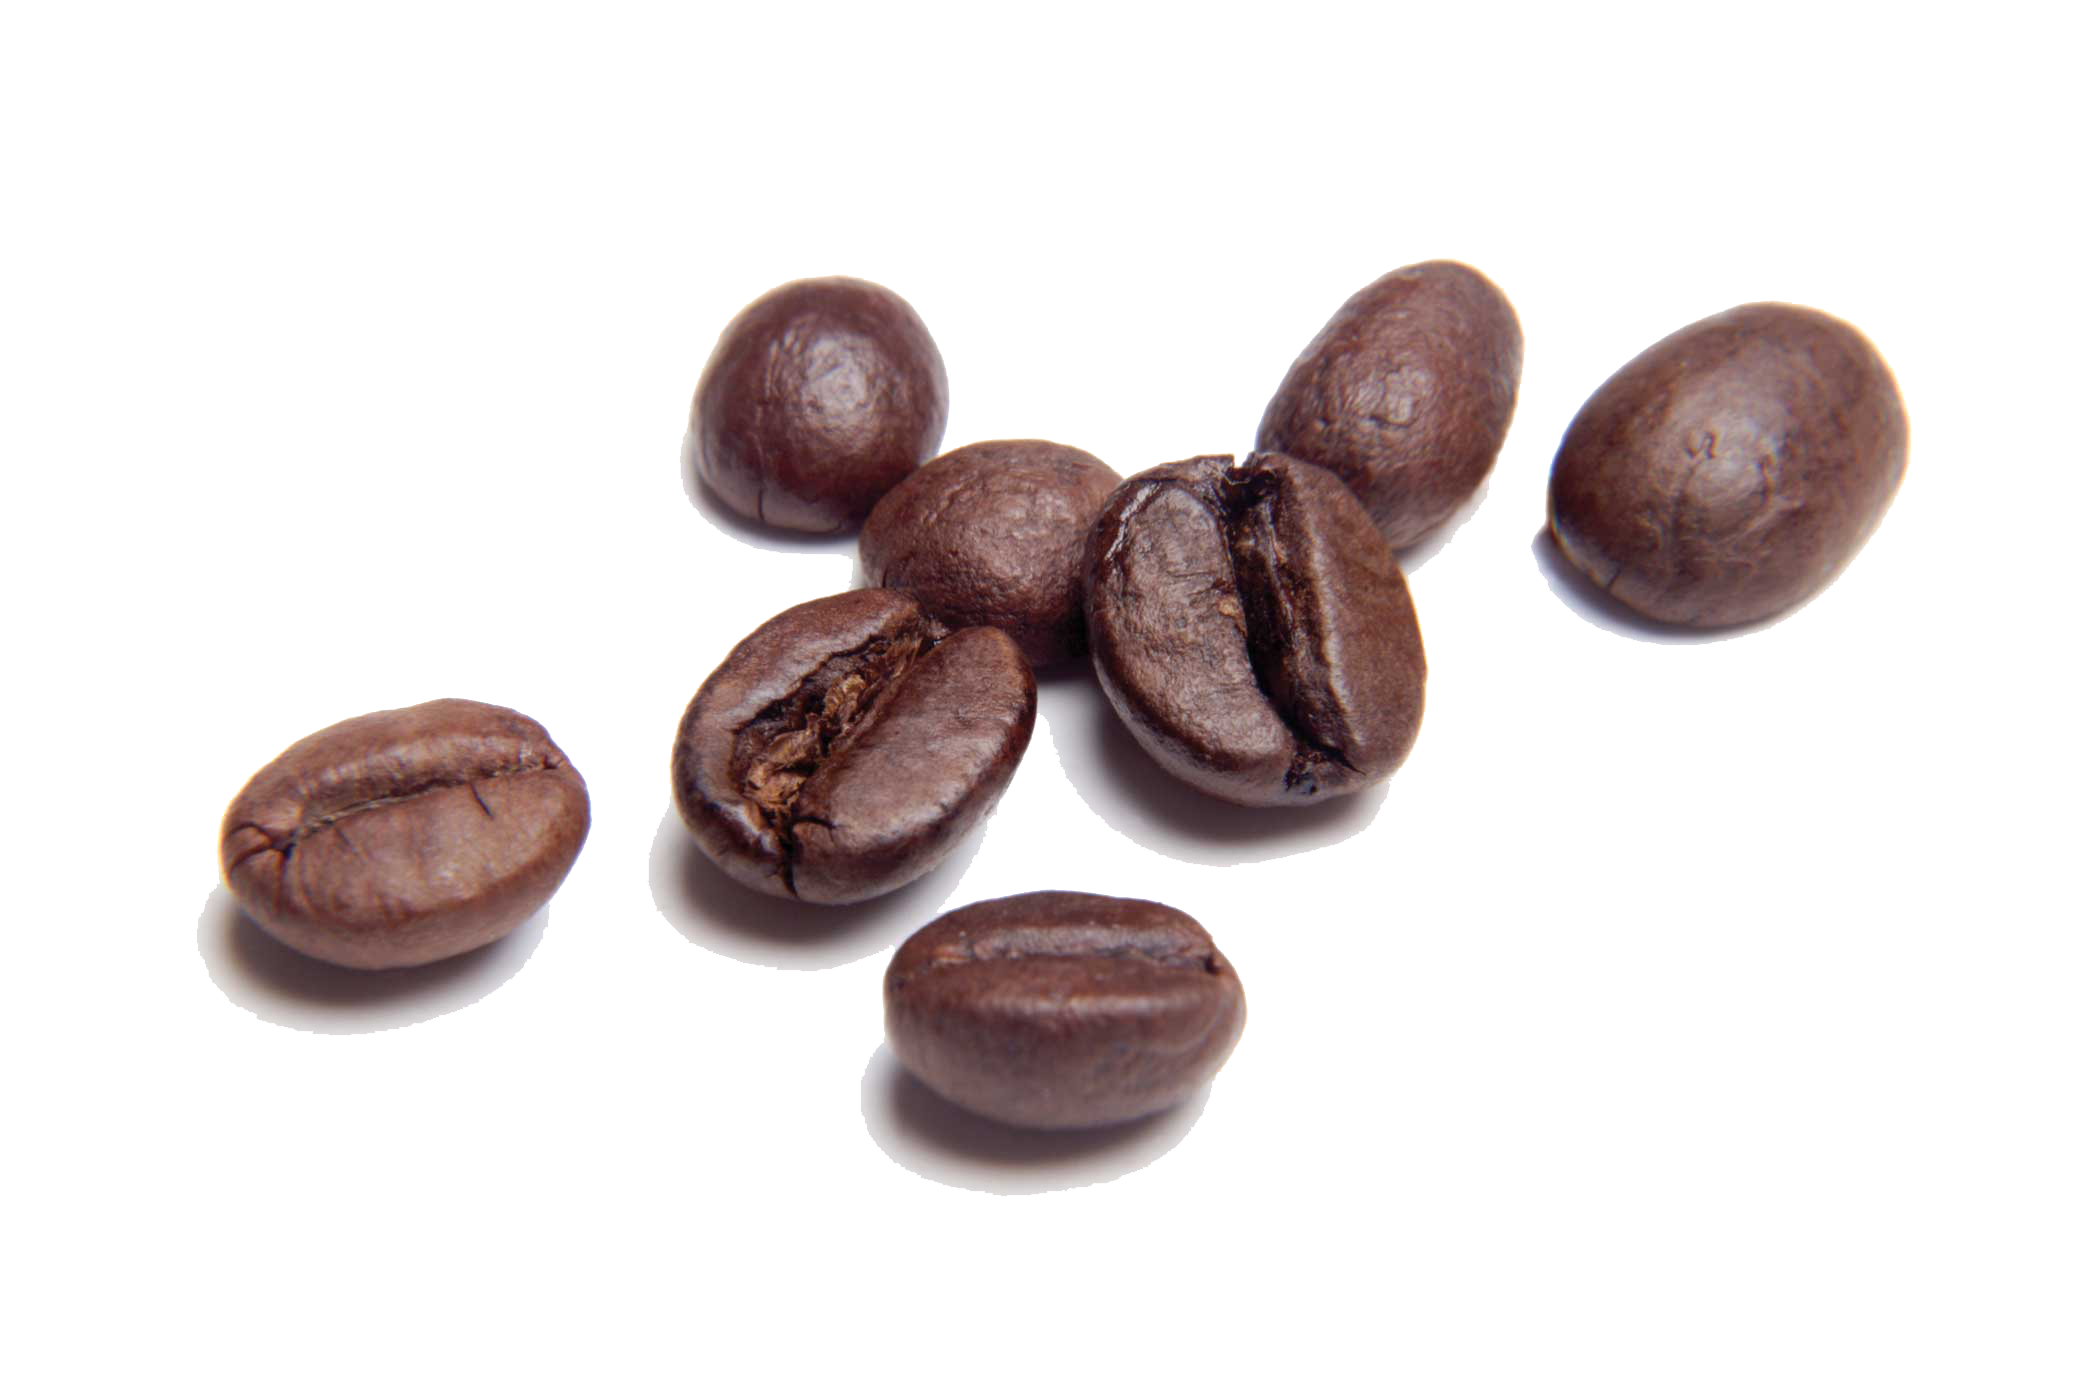 Beans vector transparent background. Coffee png free images